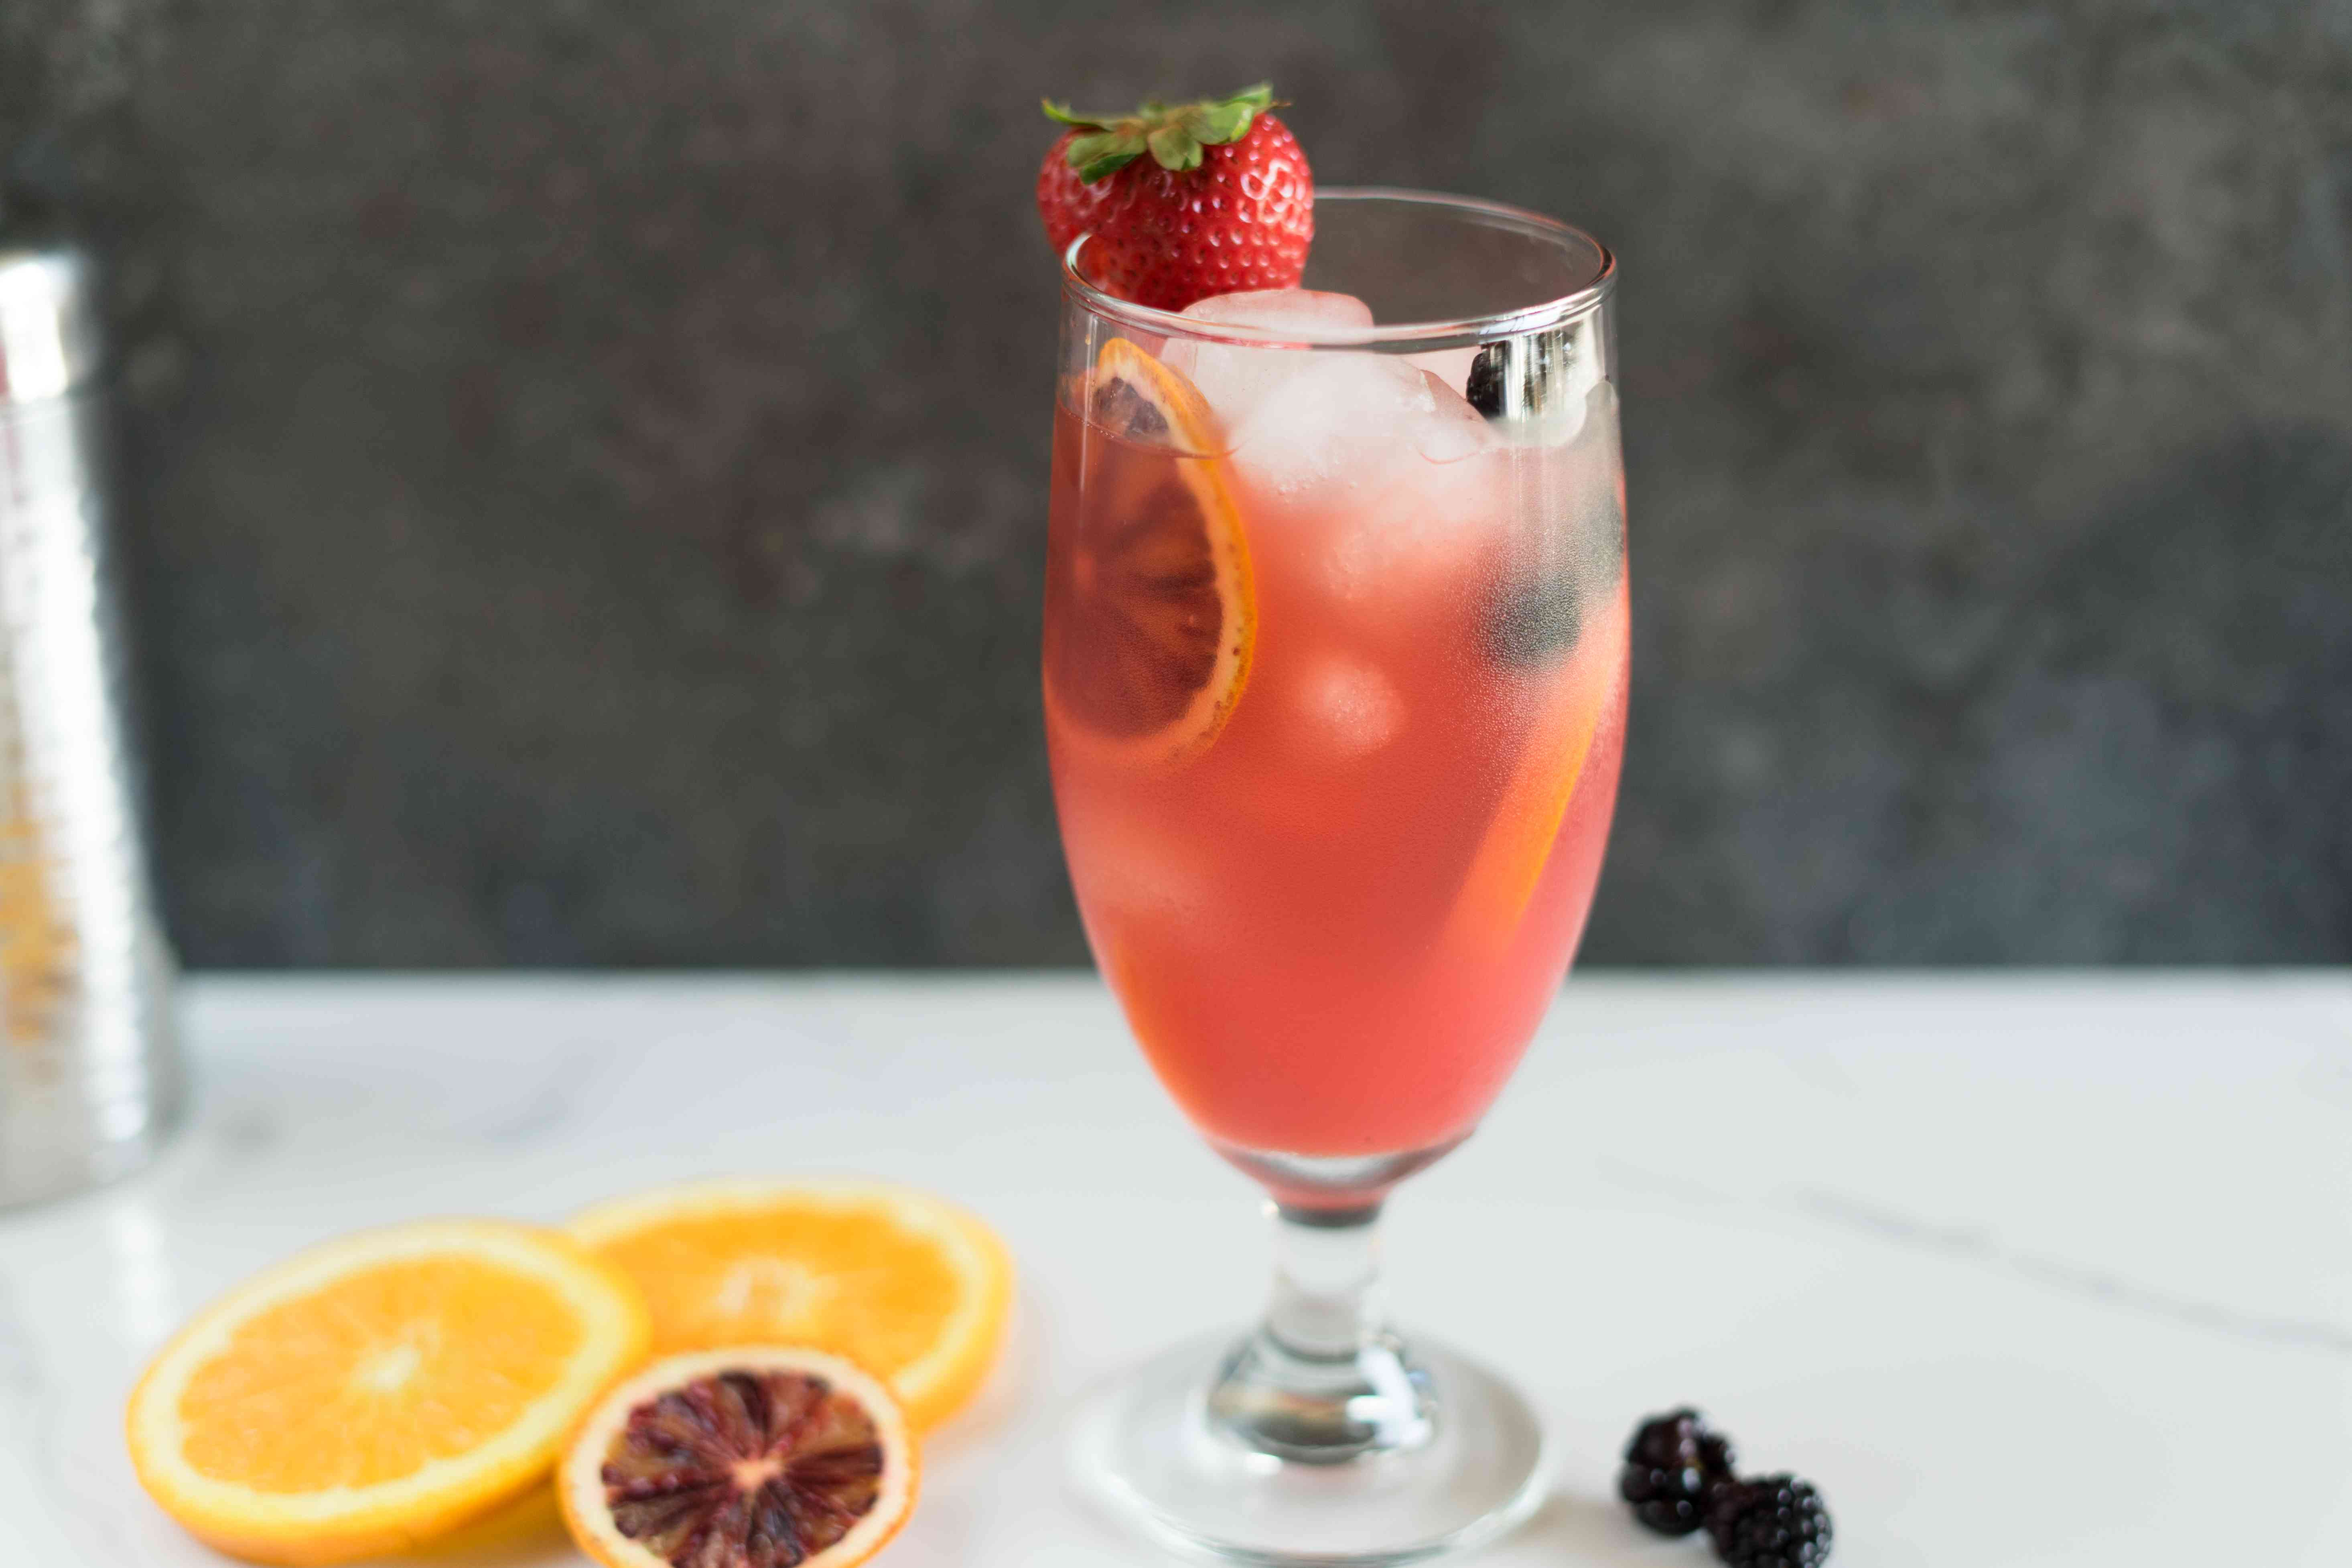 Rum runner with ice and garnished with fruit